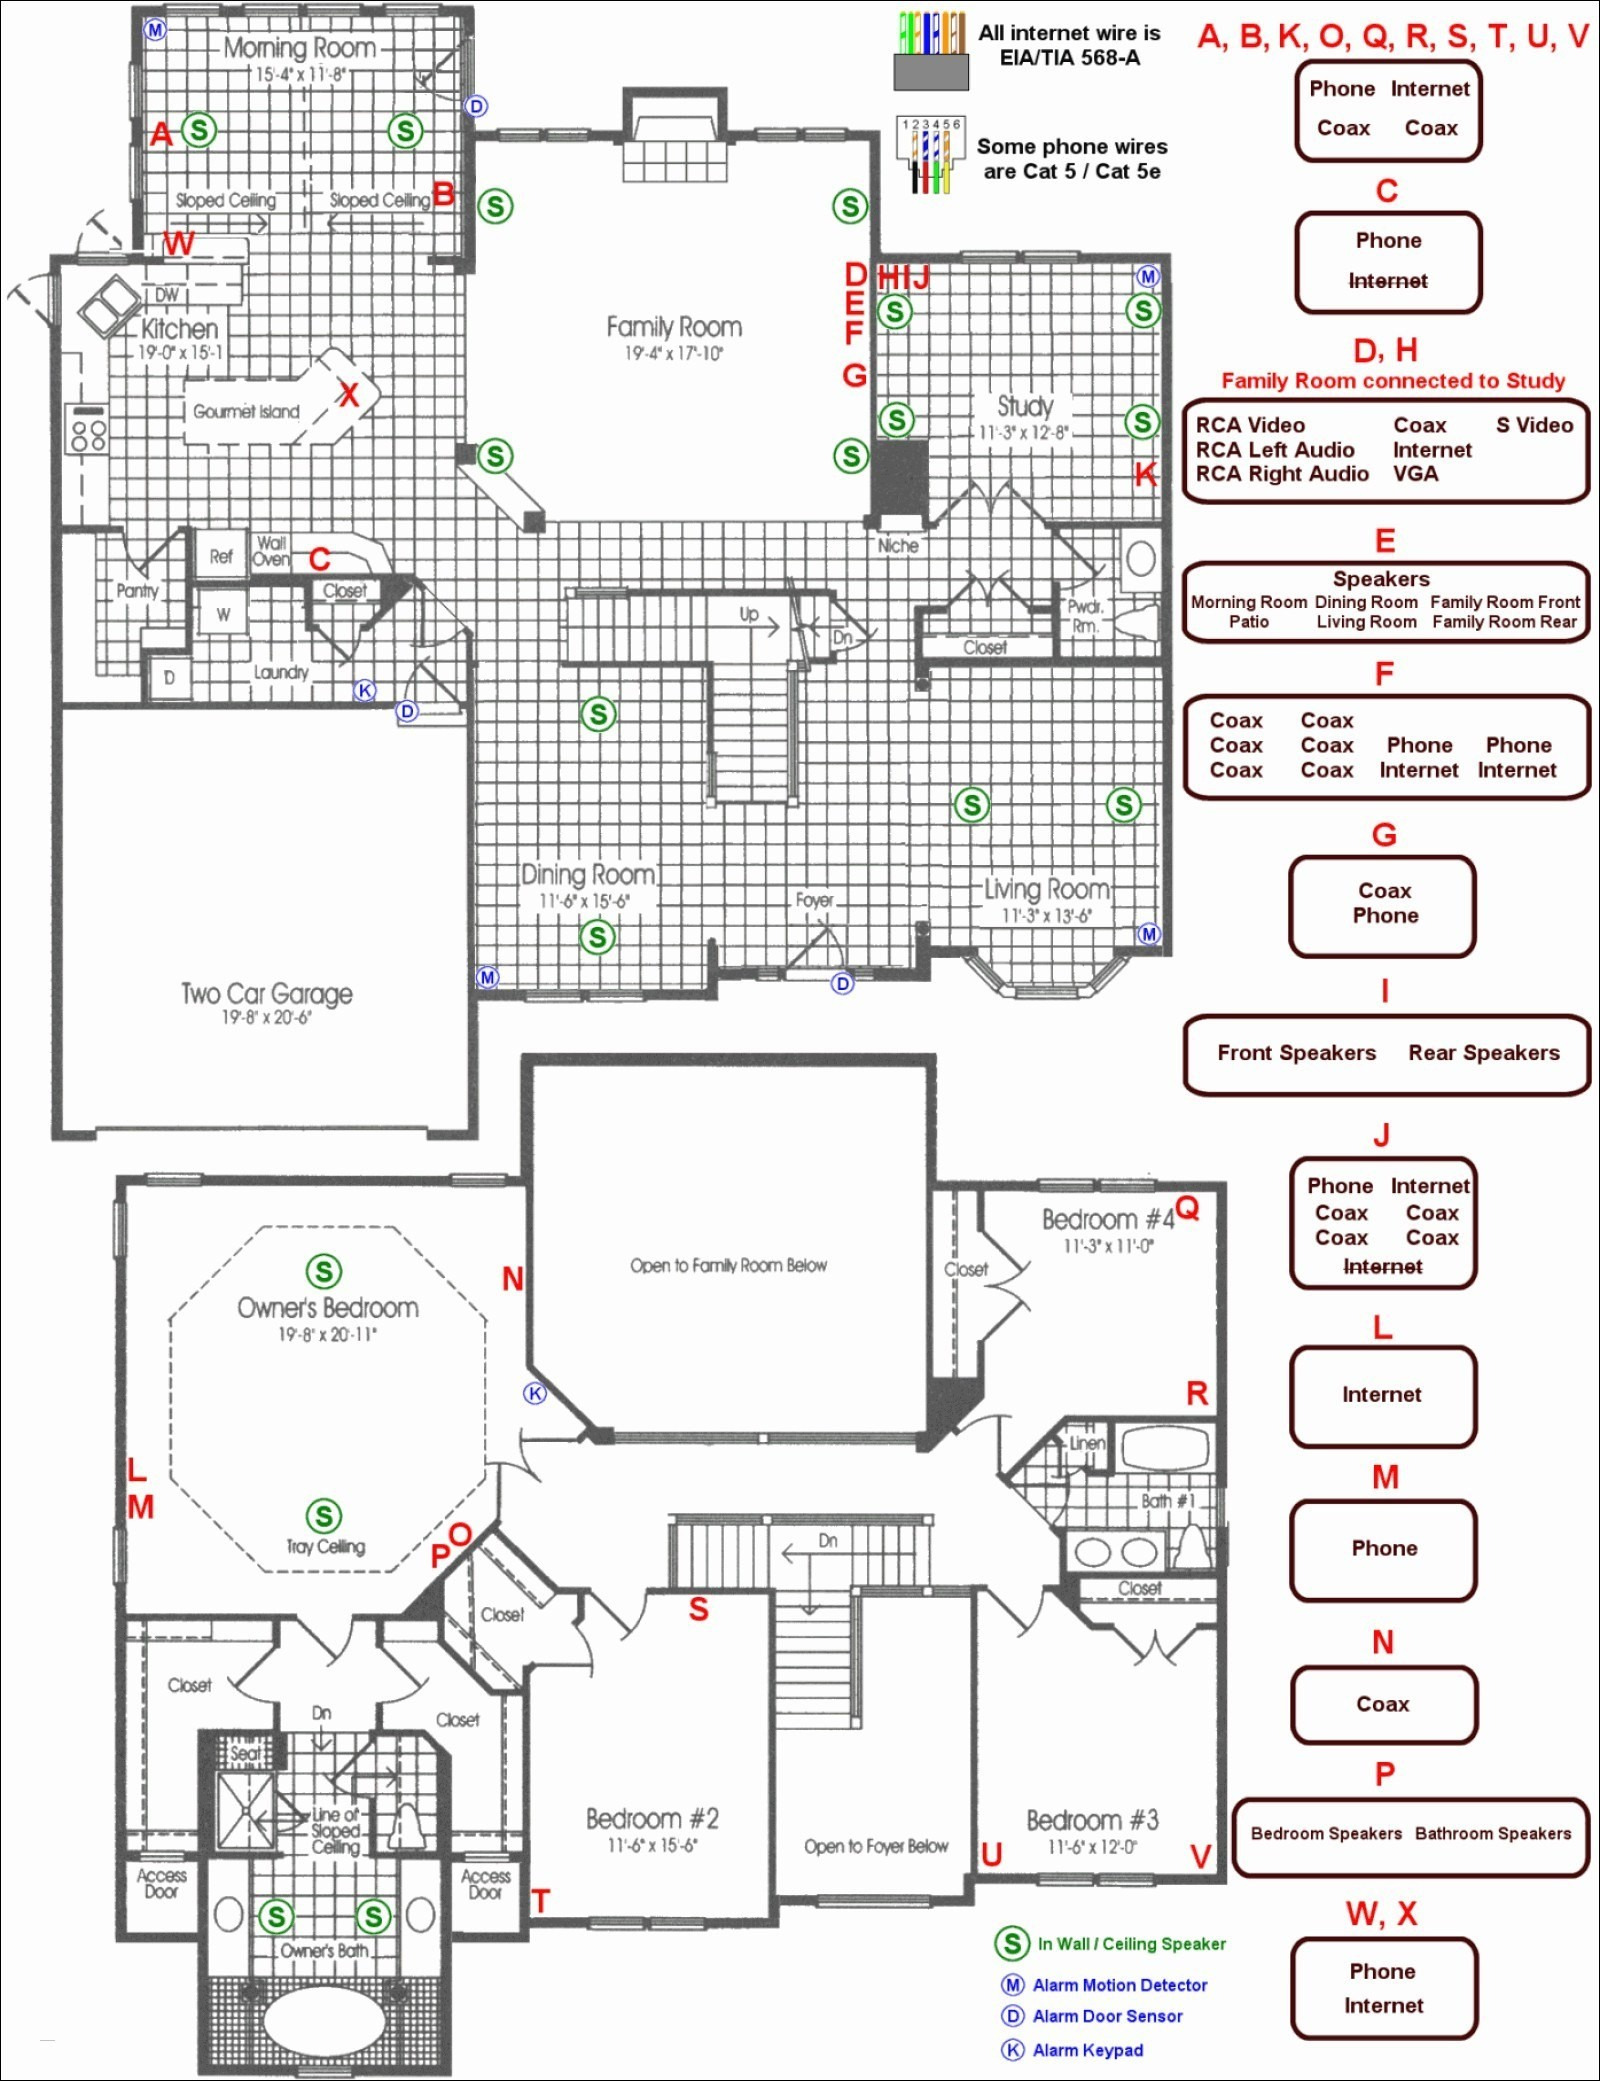 electrical house wiring diagram software house wiring plan drawing awesome electrical wiring diagram symbols sample 9b